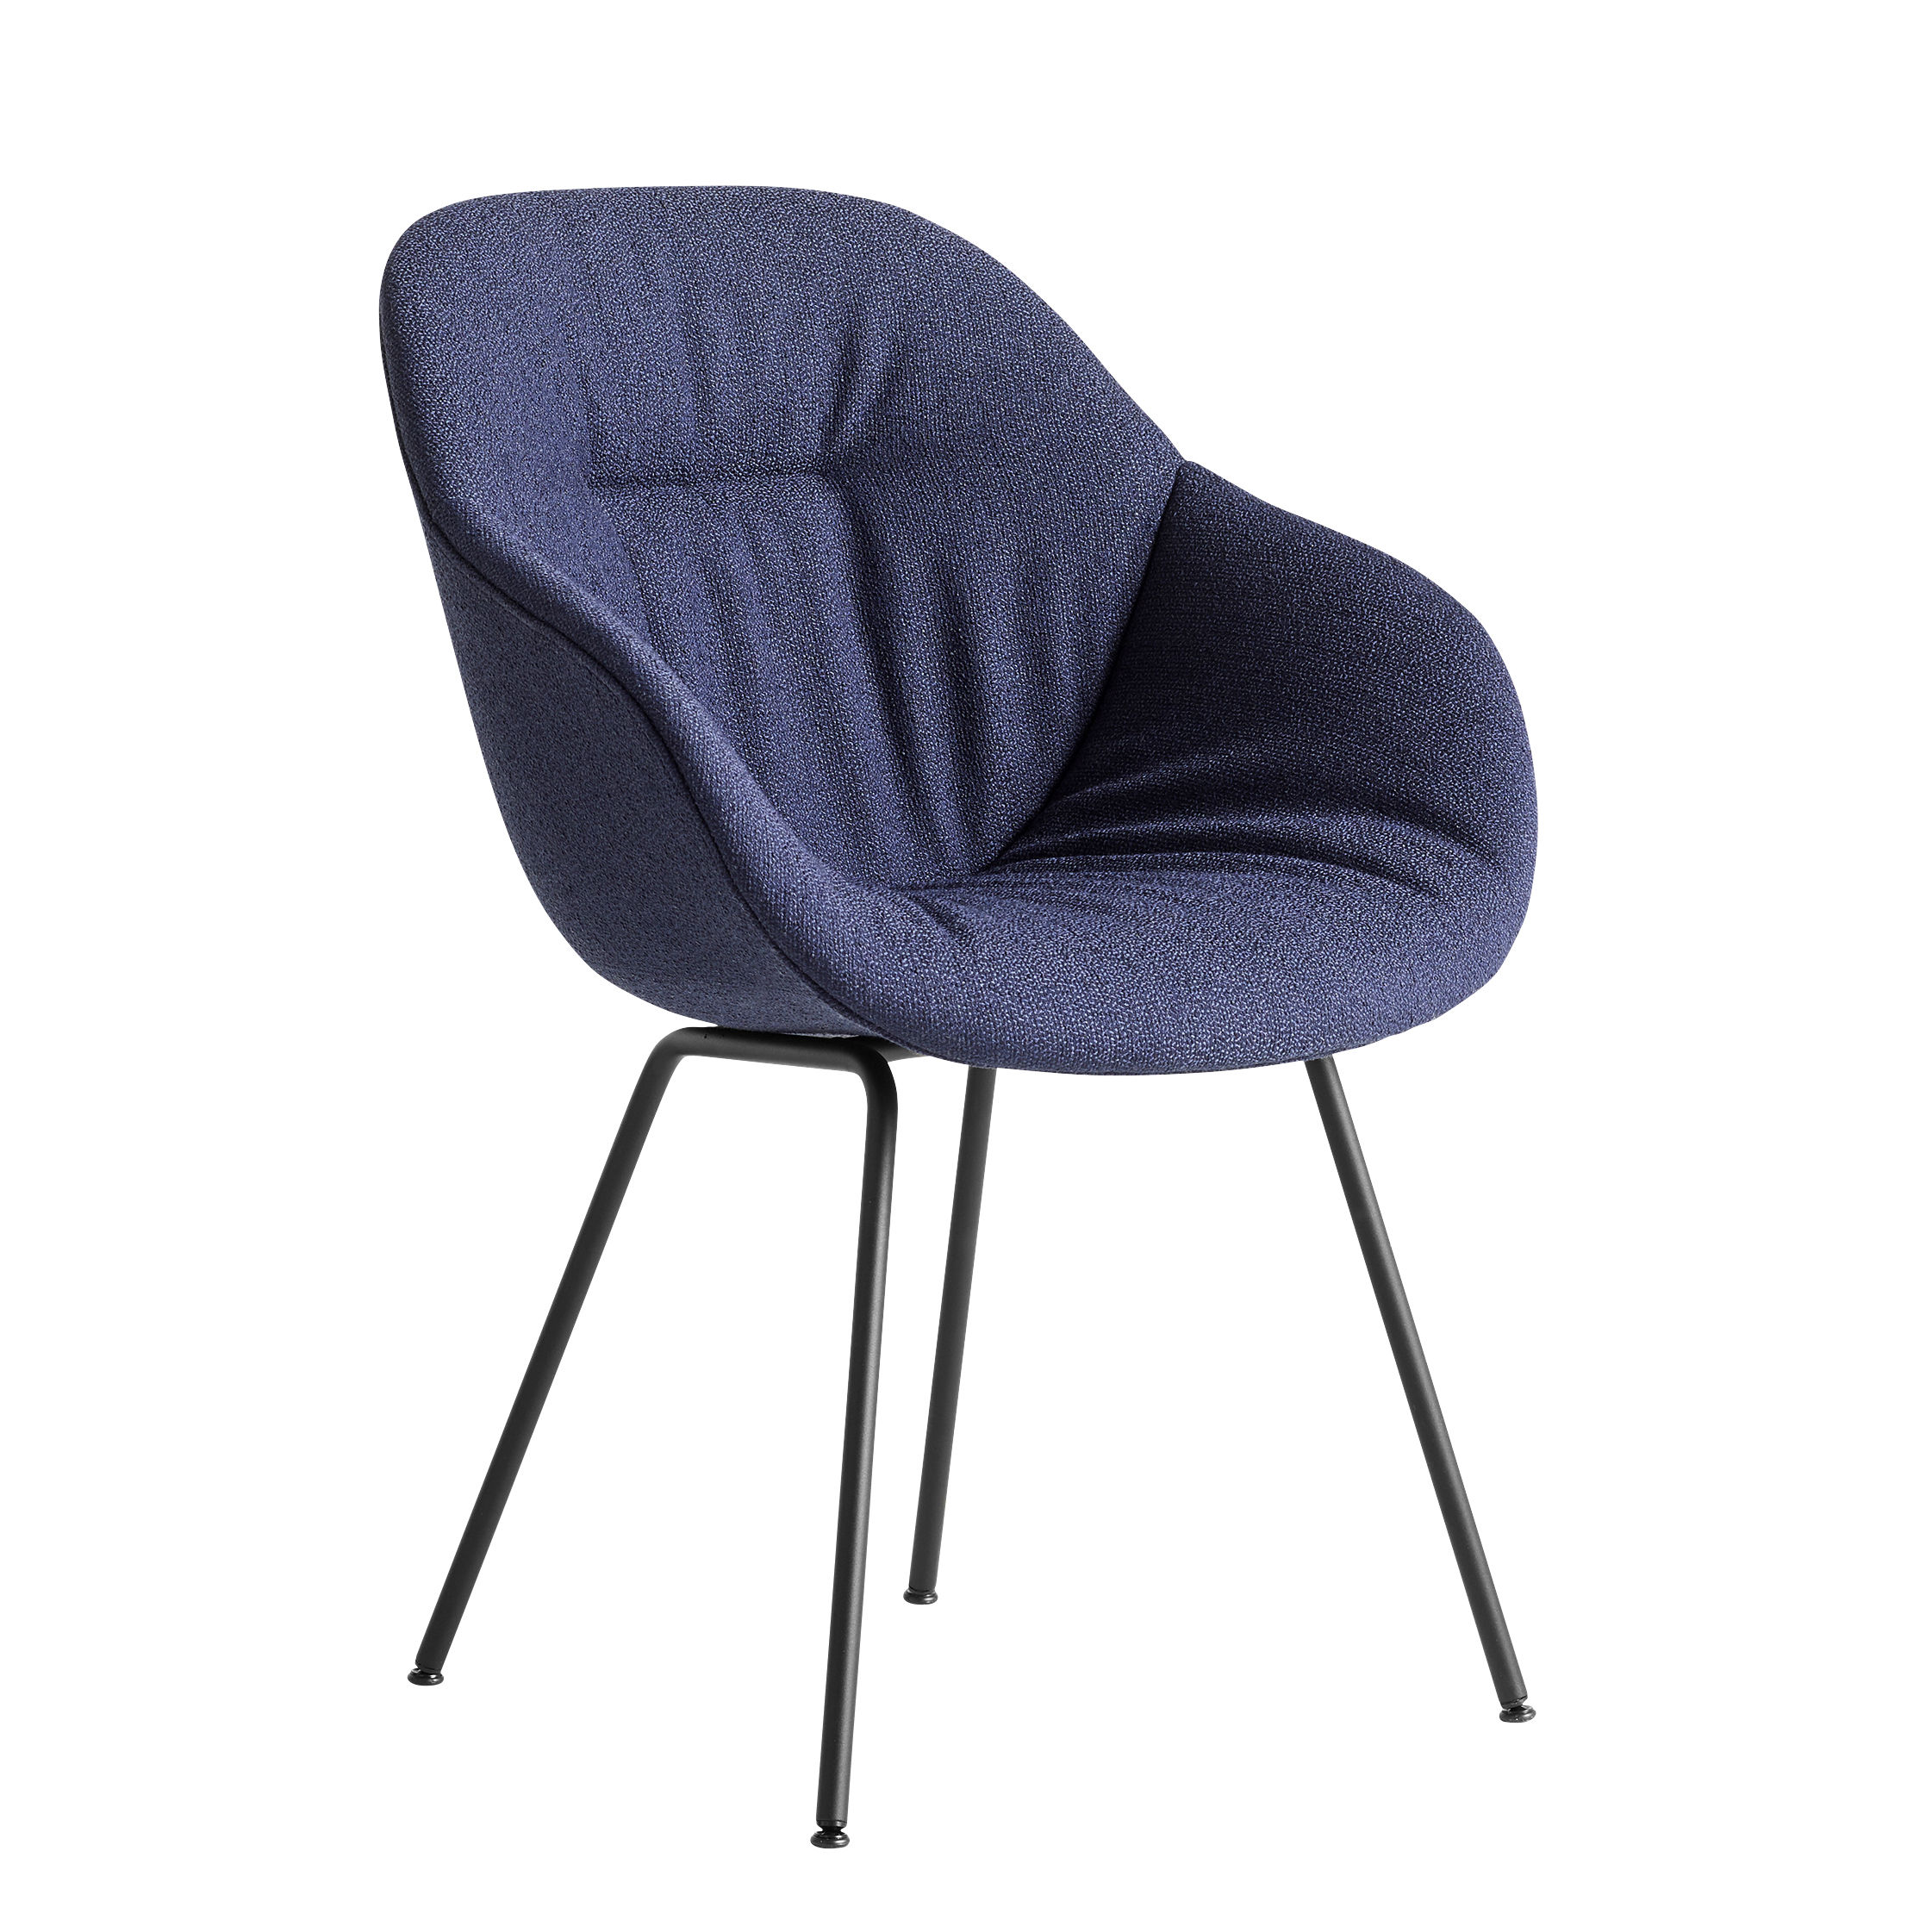 Furniture - Chairs - About a chair AAC127 Soft Padded armchair - / High backrest - Full quilted fabric & metal by Hay - Blue / Black legs -  Ouate, Fabric, Polyurethane foam, Powder coated steel, Renforced polypropylen